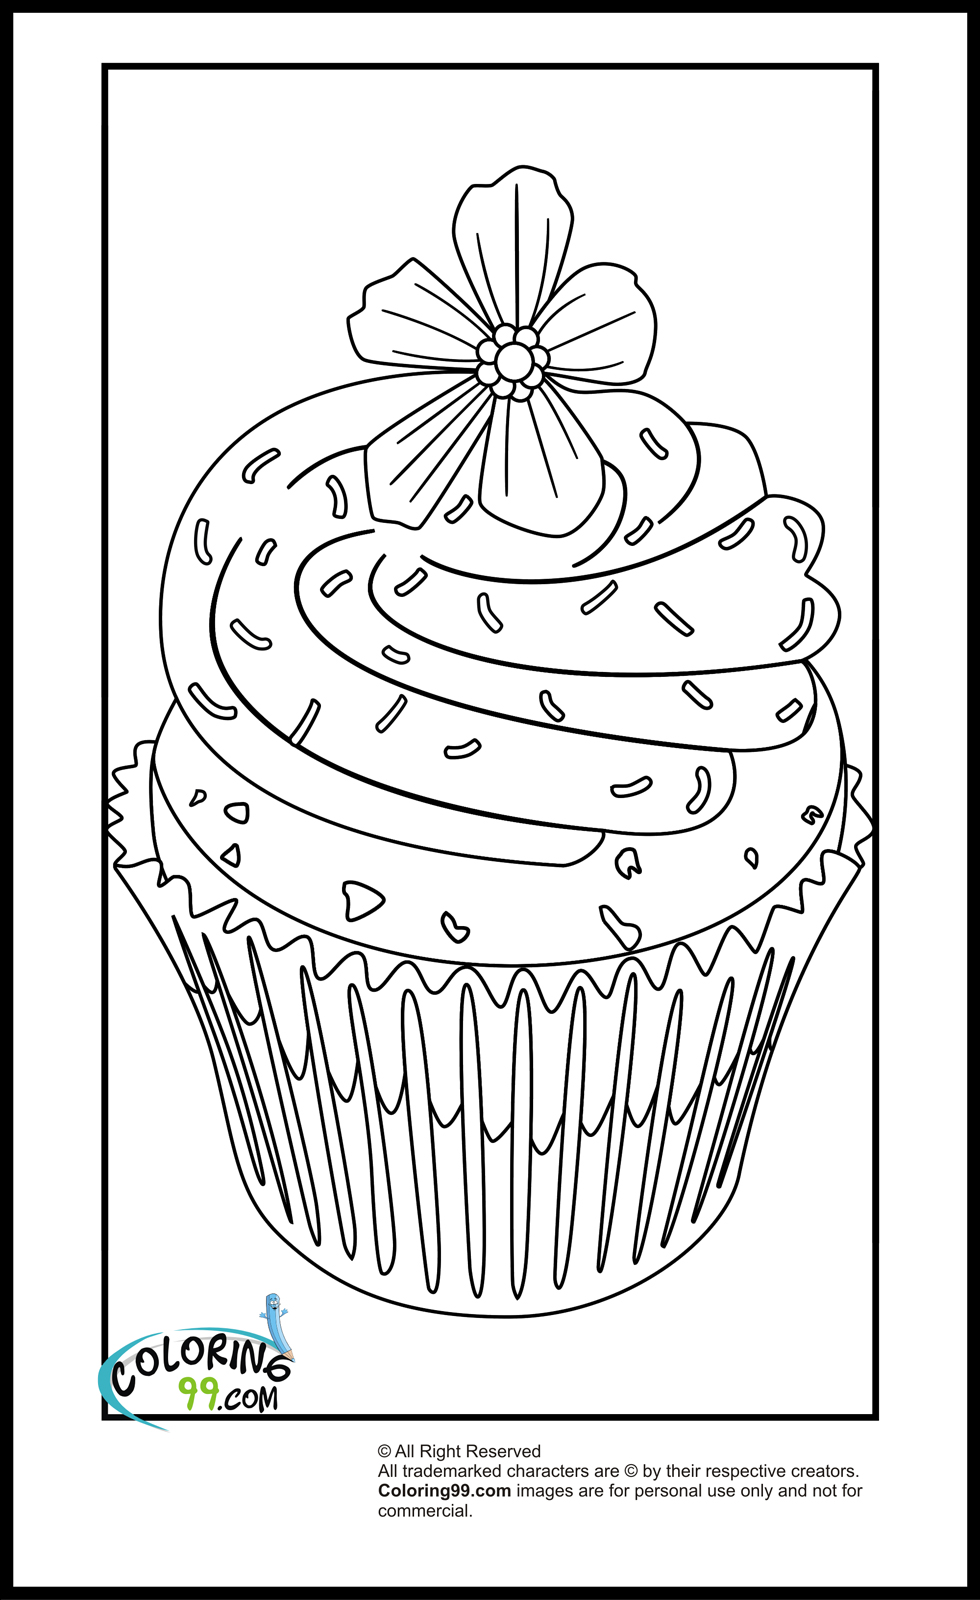 Cupcake Coloring Pages | Minister Coloring